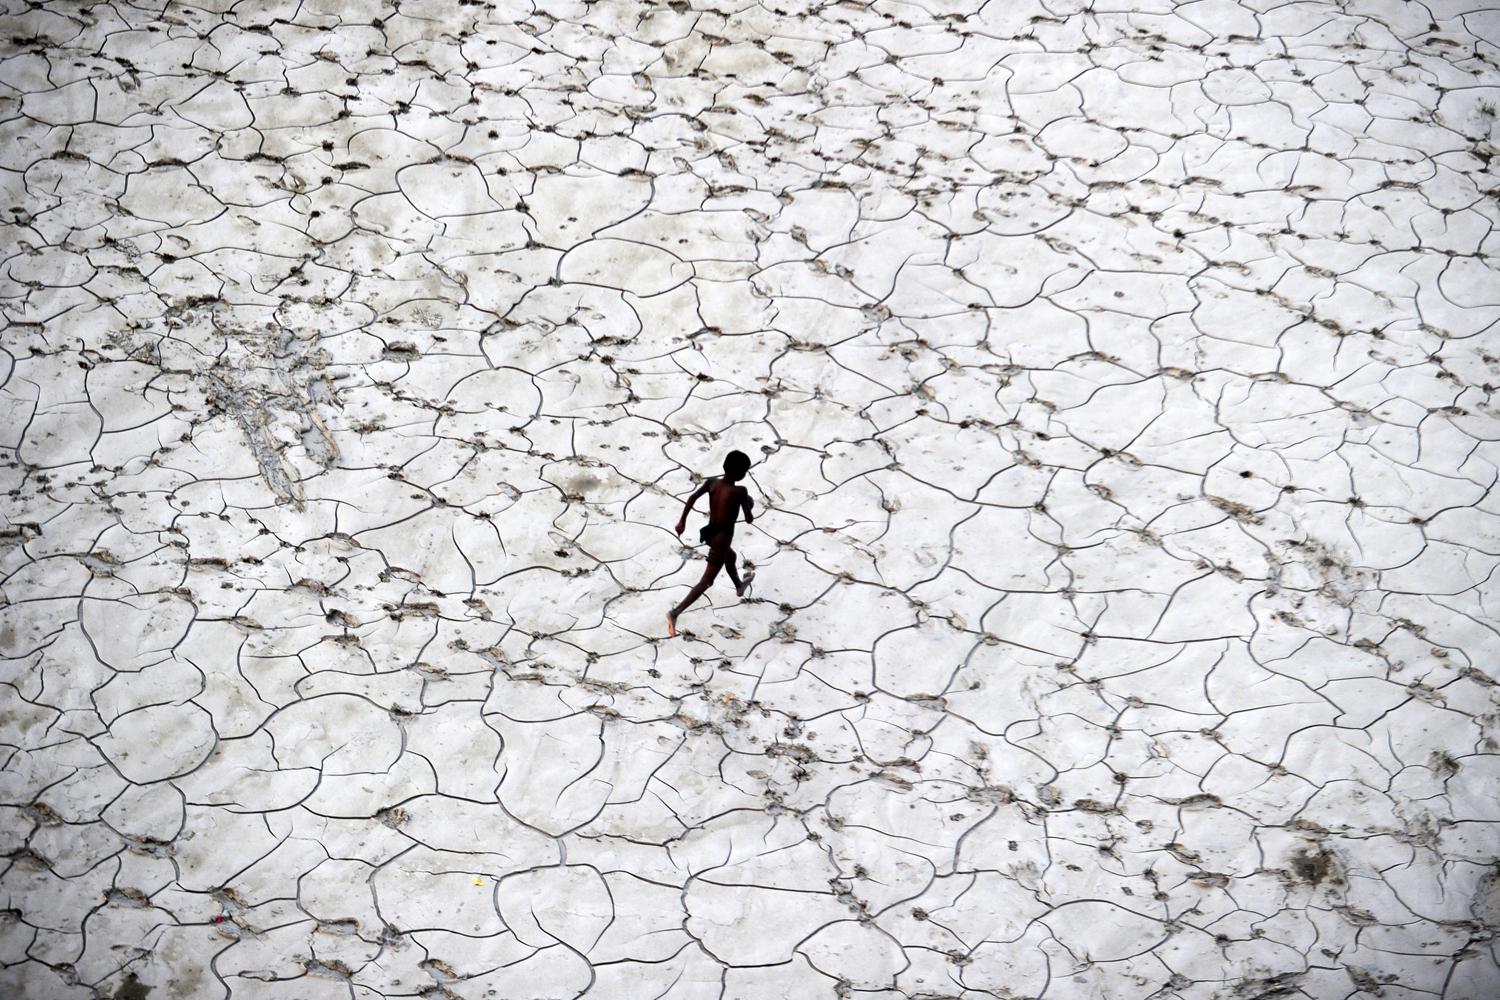 Oct. 25, 2013. An Indian street child plays in a dry river bed after flood waters receded in Allahabad, India.